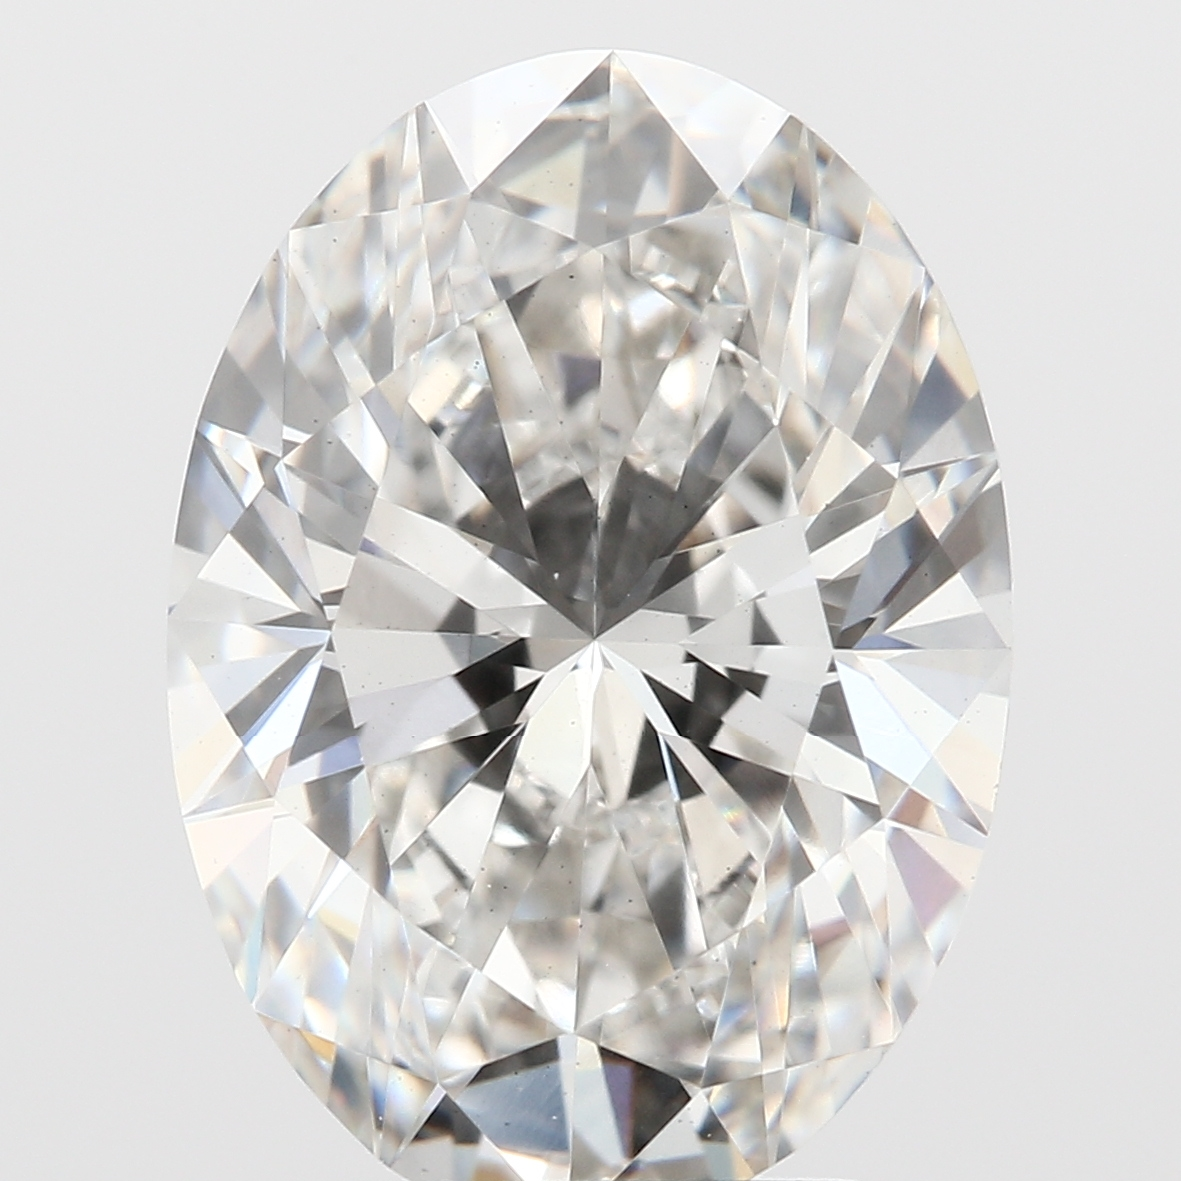 Oval Cut 2.67 Carat G Color Vs1 Clarity Sku Lg71045332